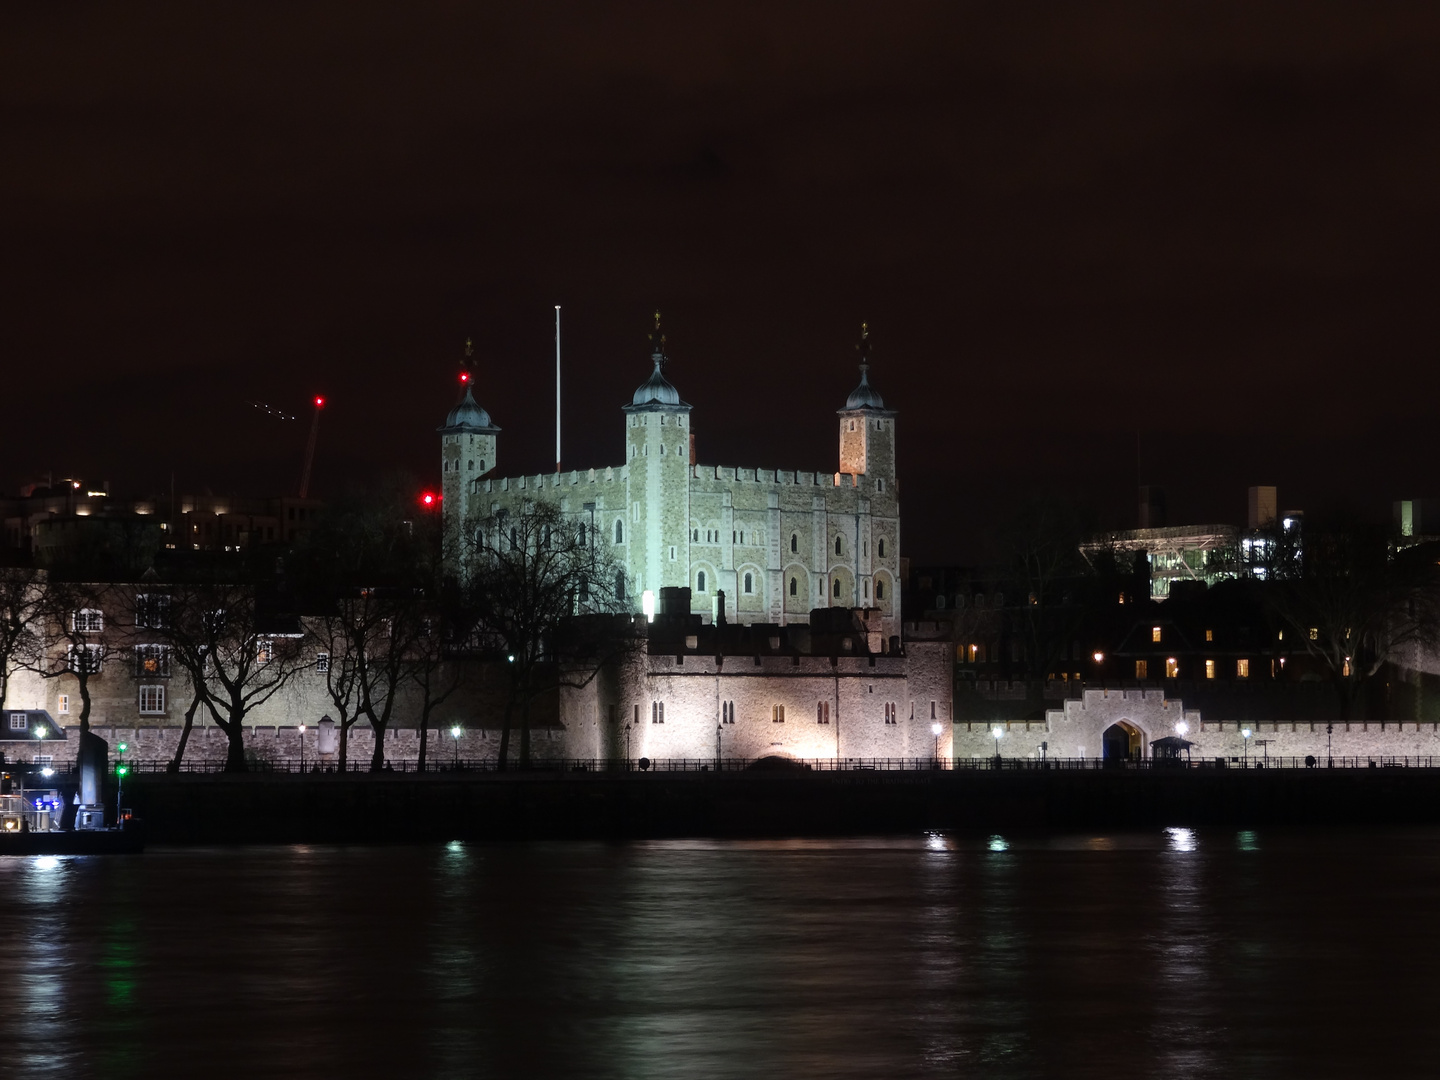 London by night - The White Tower